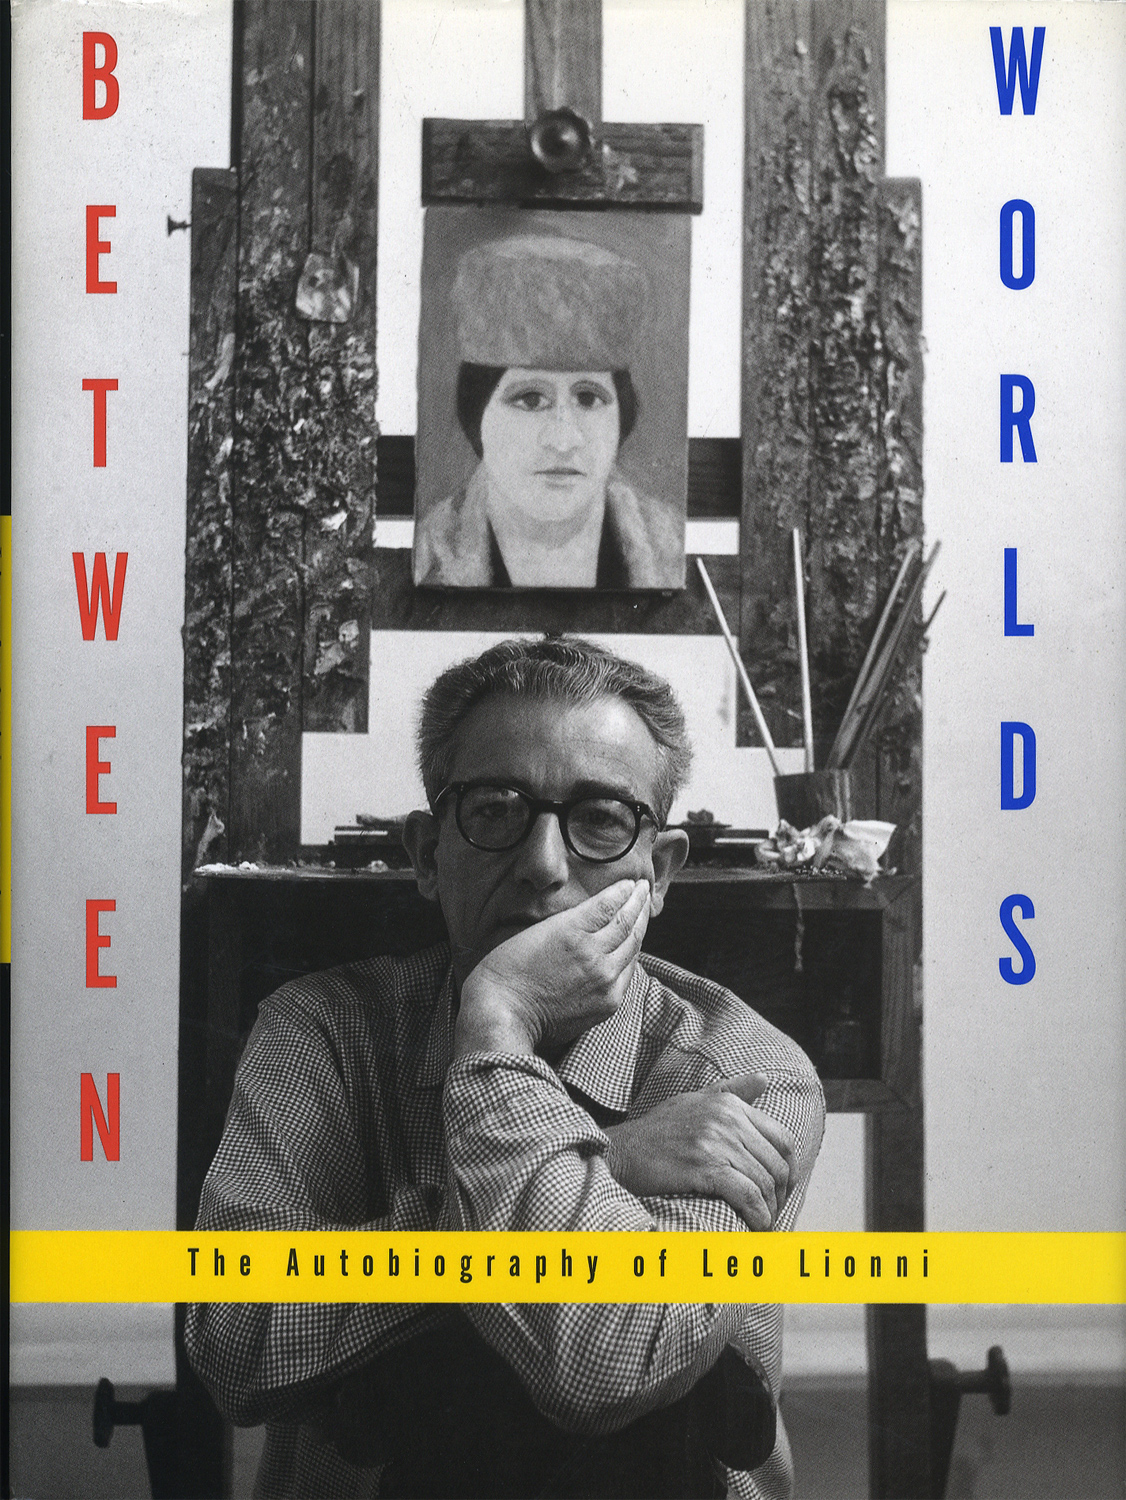 Between Worlds The Autobiography of Leo Lionni[image1]